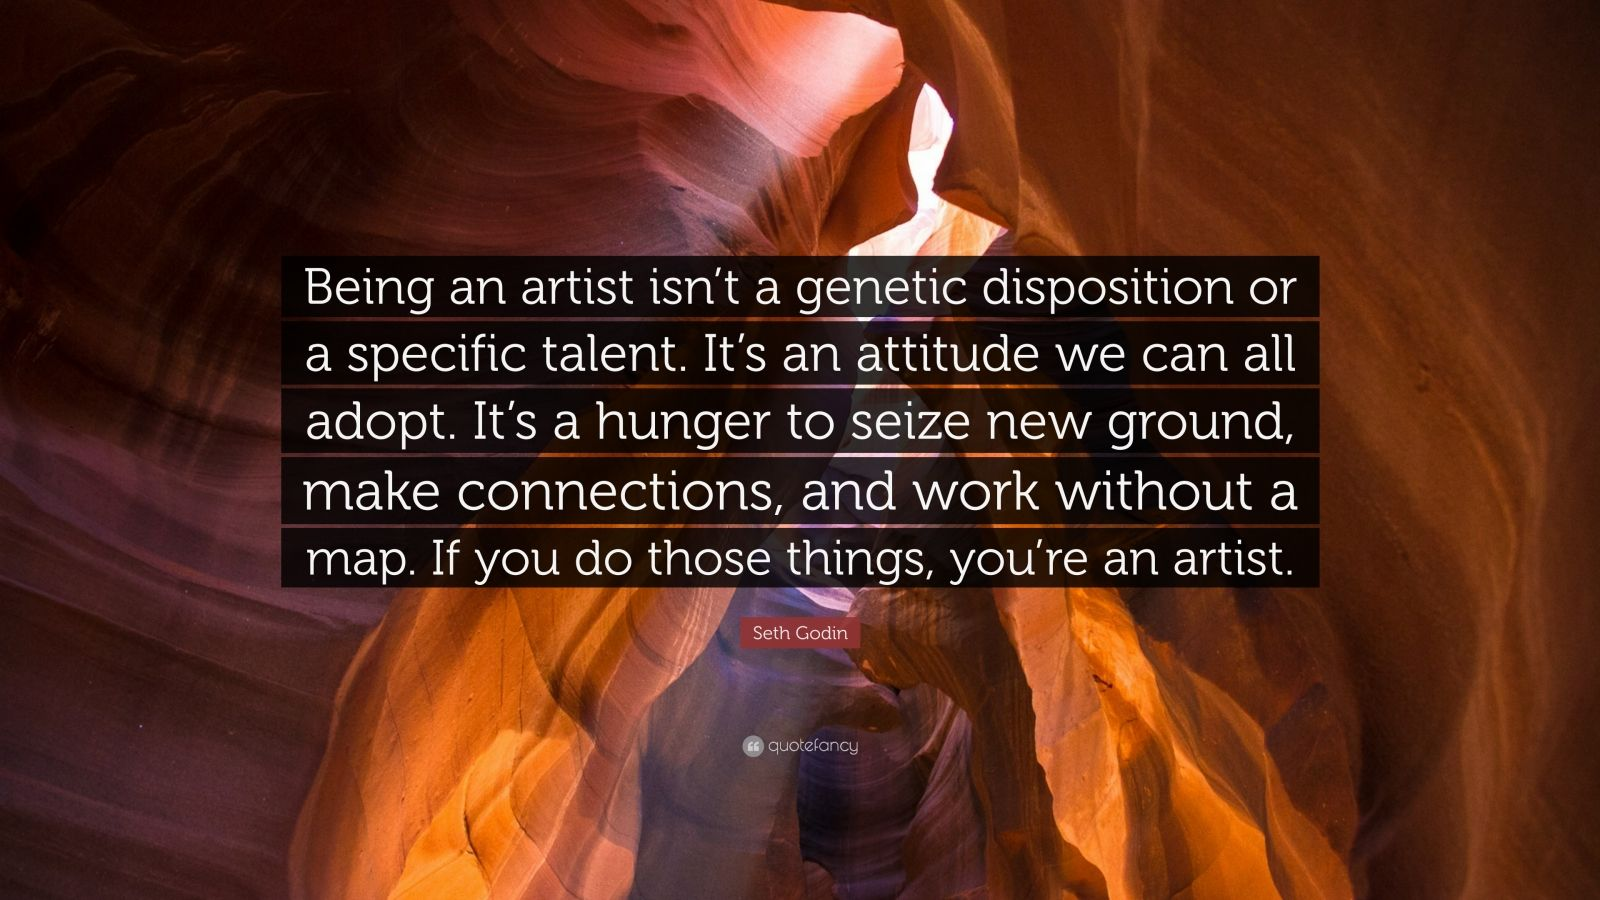 """Seth Godin Quote: """"Being an artist isn't a genetic disposition or a specific talent. It's an attitude we can all adopt. It's a hunger to seize new ground, make connections, and work without a map. If you do those things, you're an artist."""""""